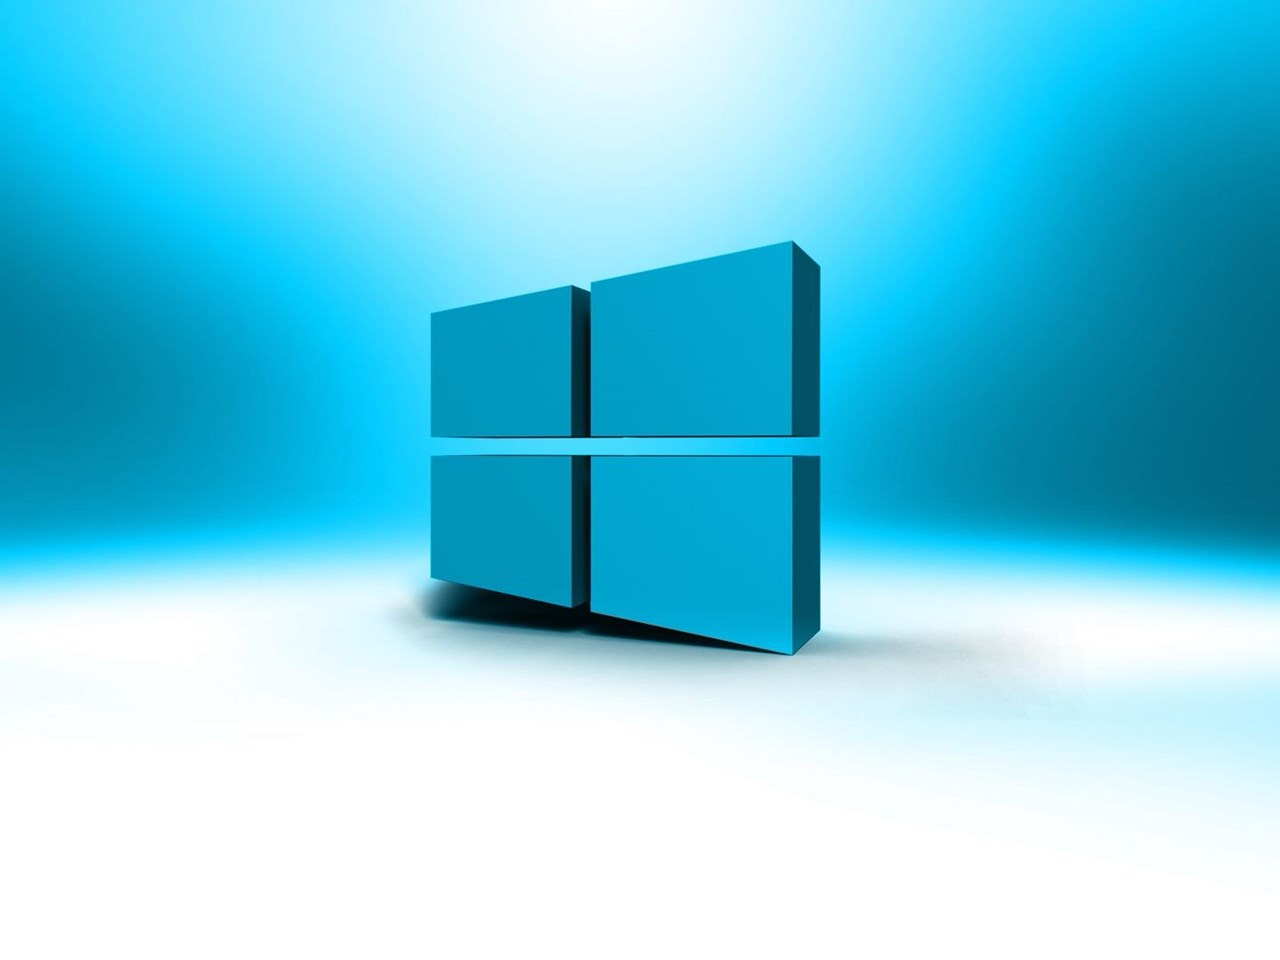 Windows 10 3d desktop background for Window 3d wallpaper